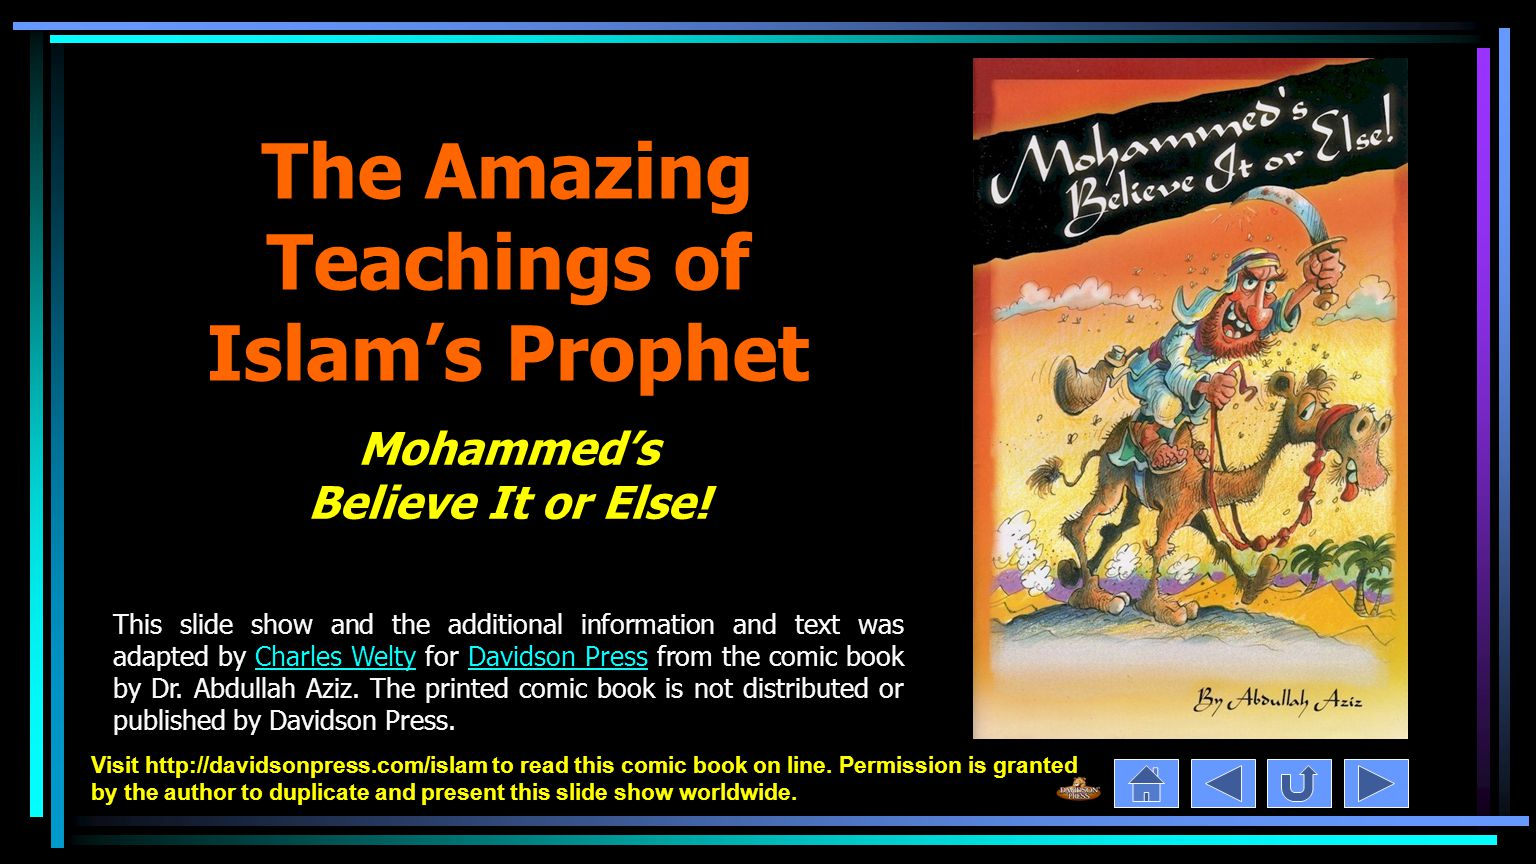 Visit http://davidsonpress.com/islam to read this comic book on line.